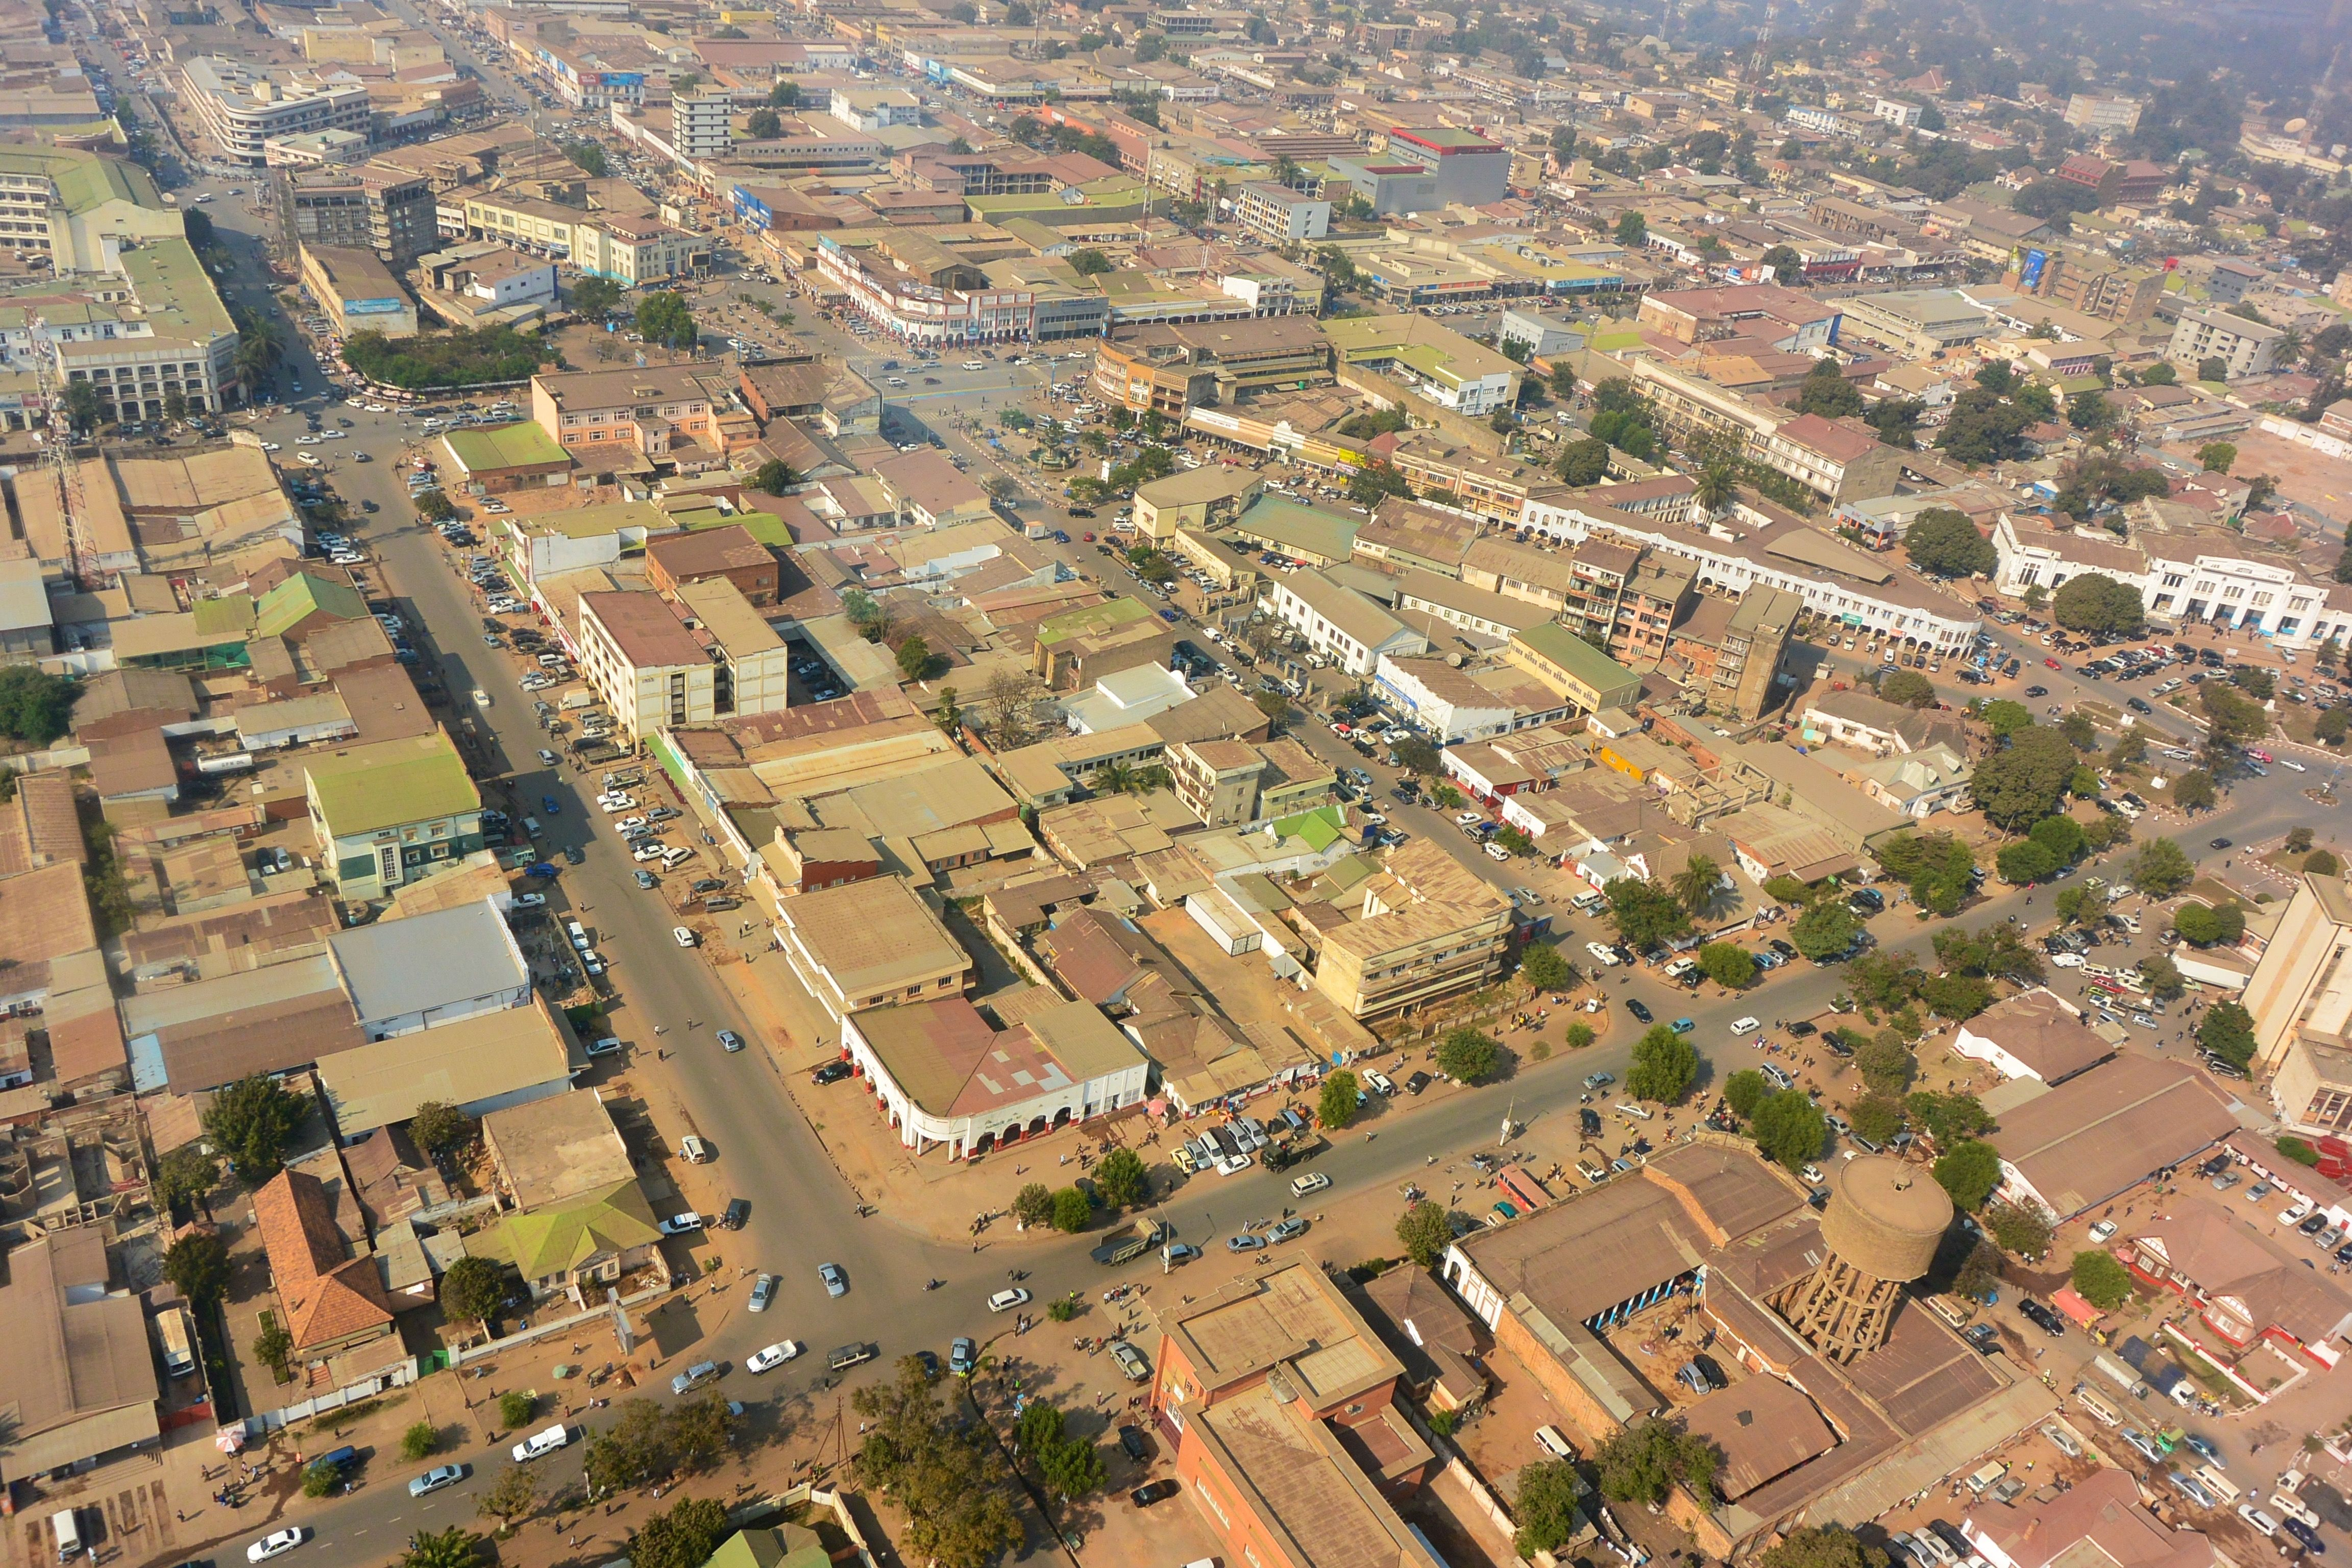 Aerial View Of The City Center Of Lubumbashi